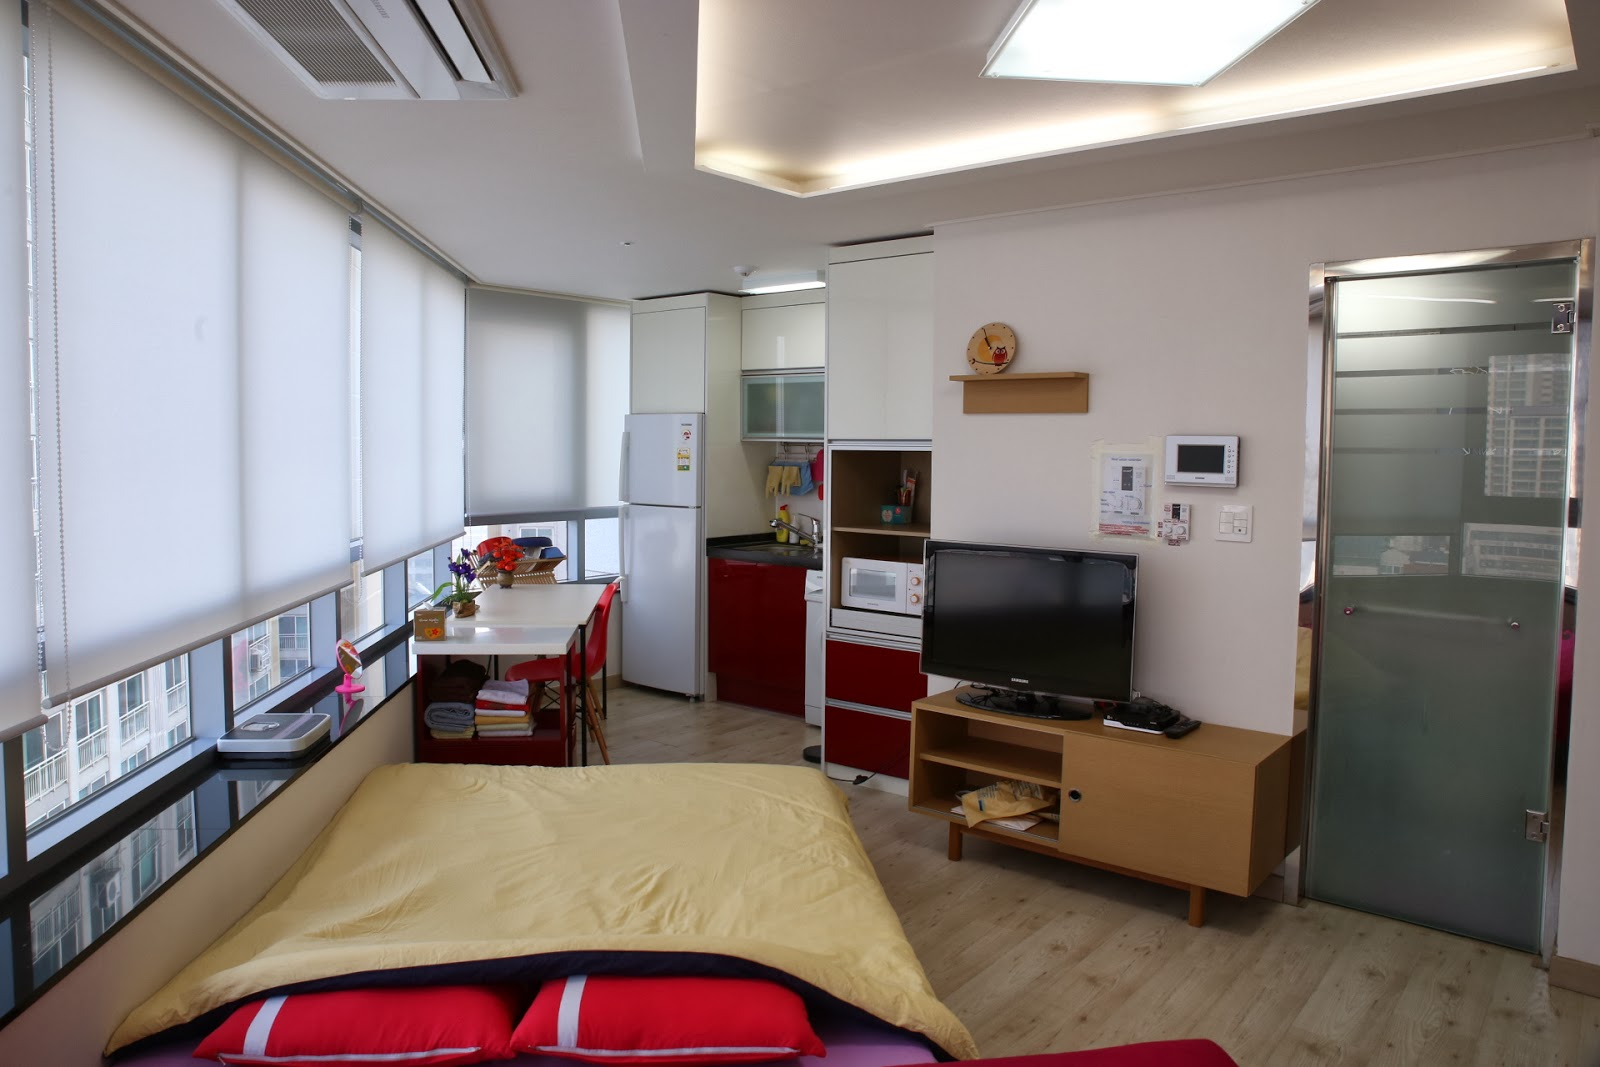 Do You Have A Plan To Visit Seoul For Sightseeing Or Business Can Studio Apartment In Center Of Short Term Long